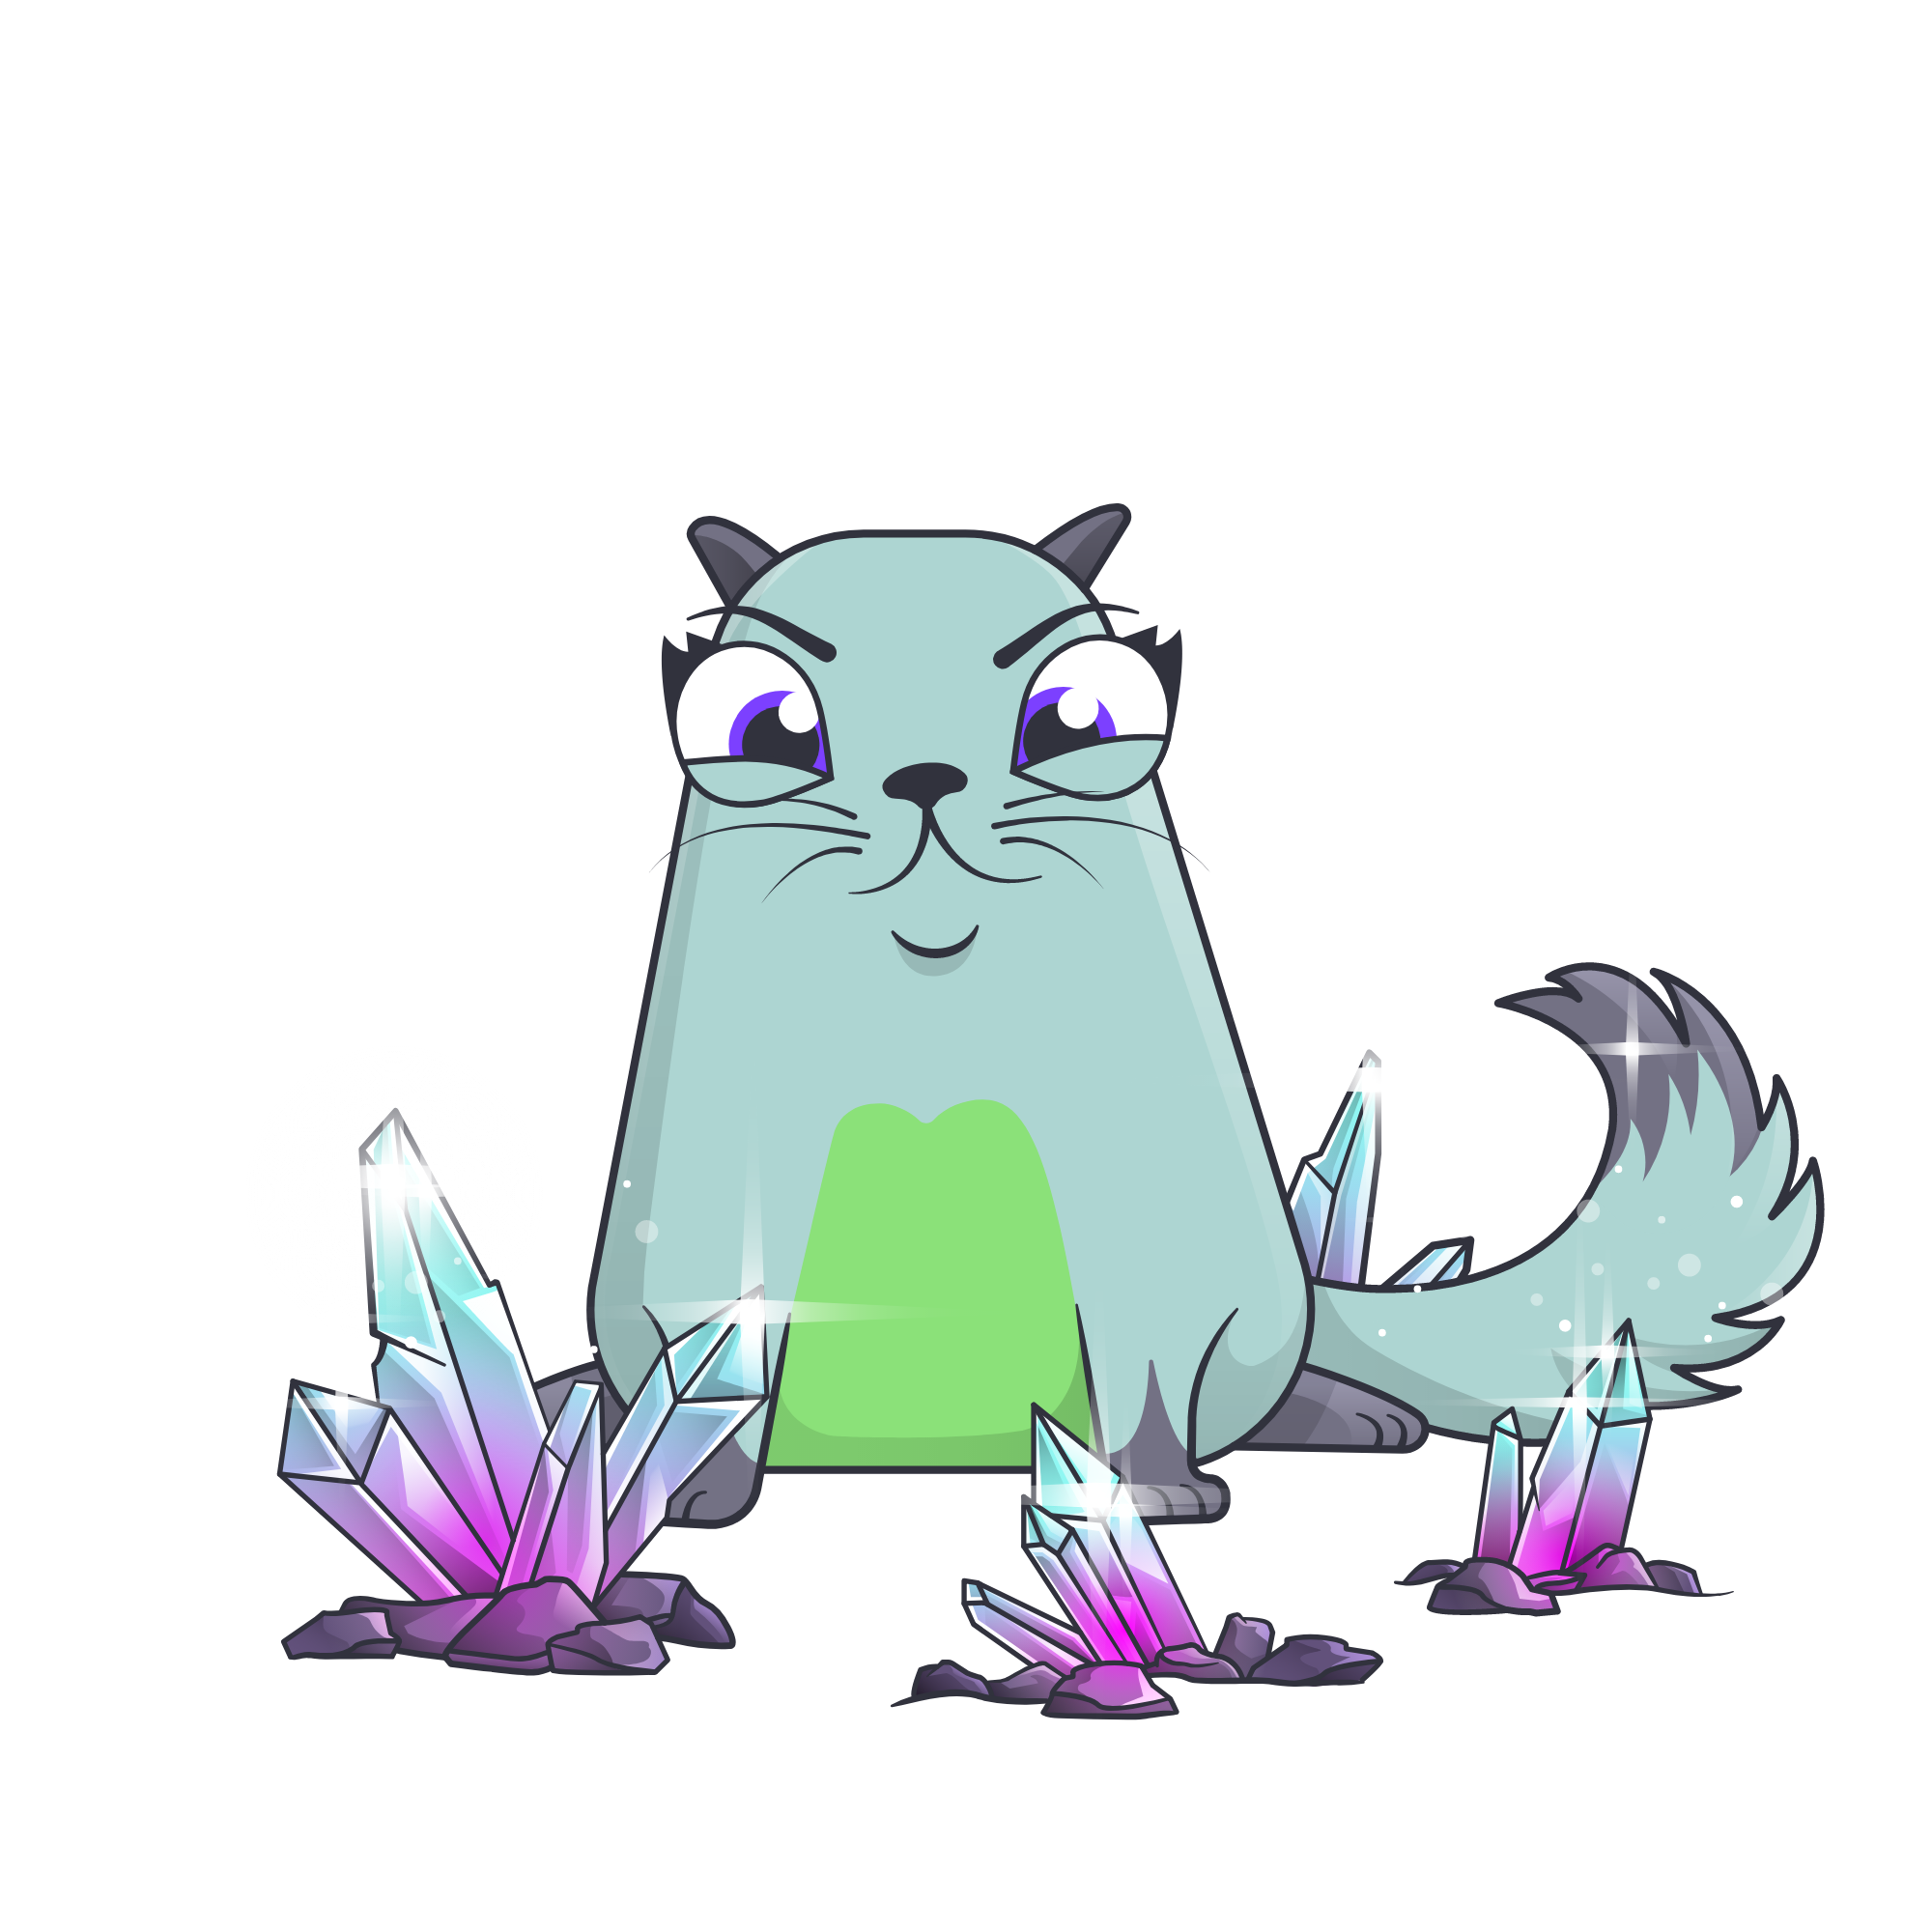 cryptokitty #1951128